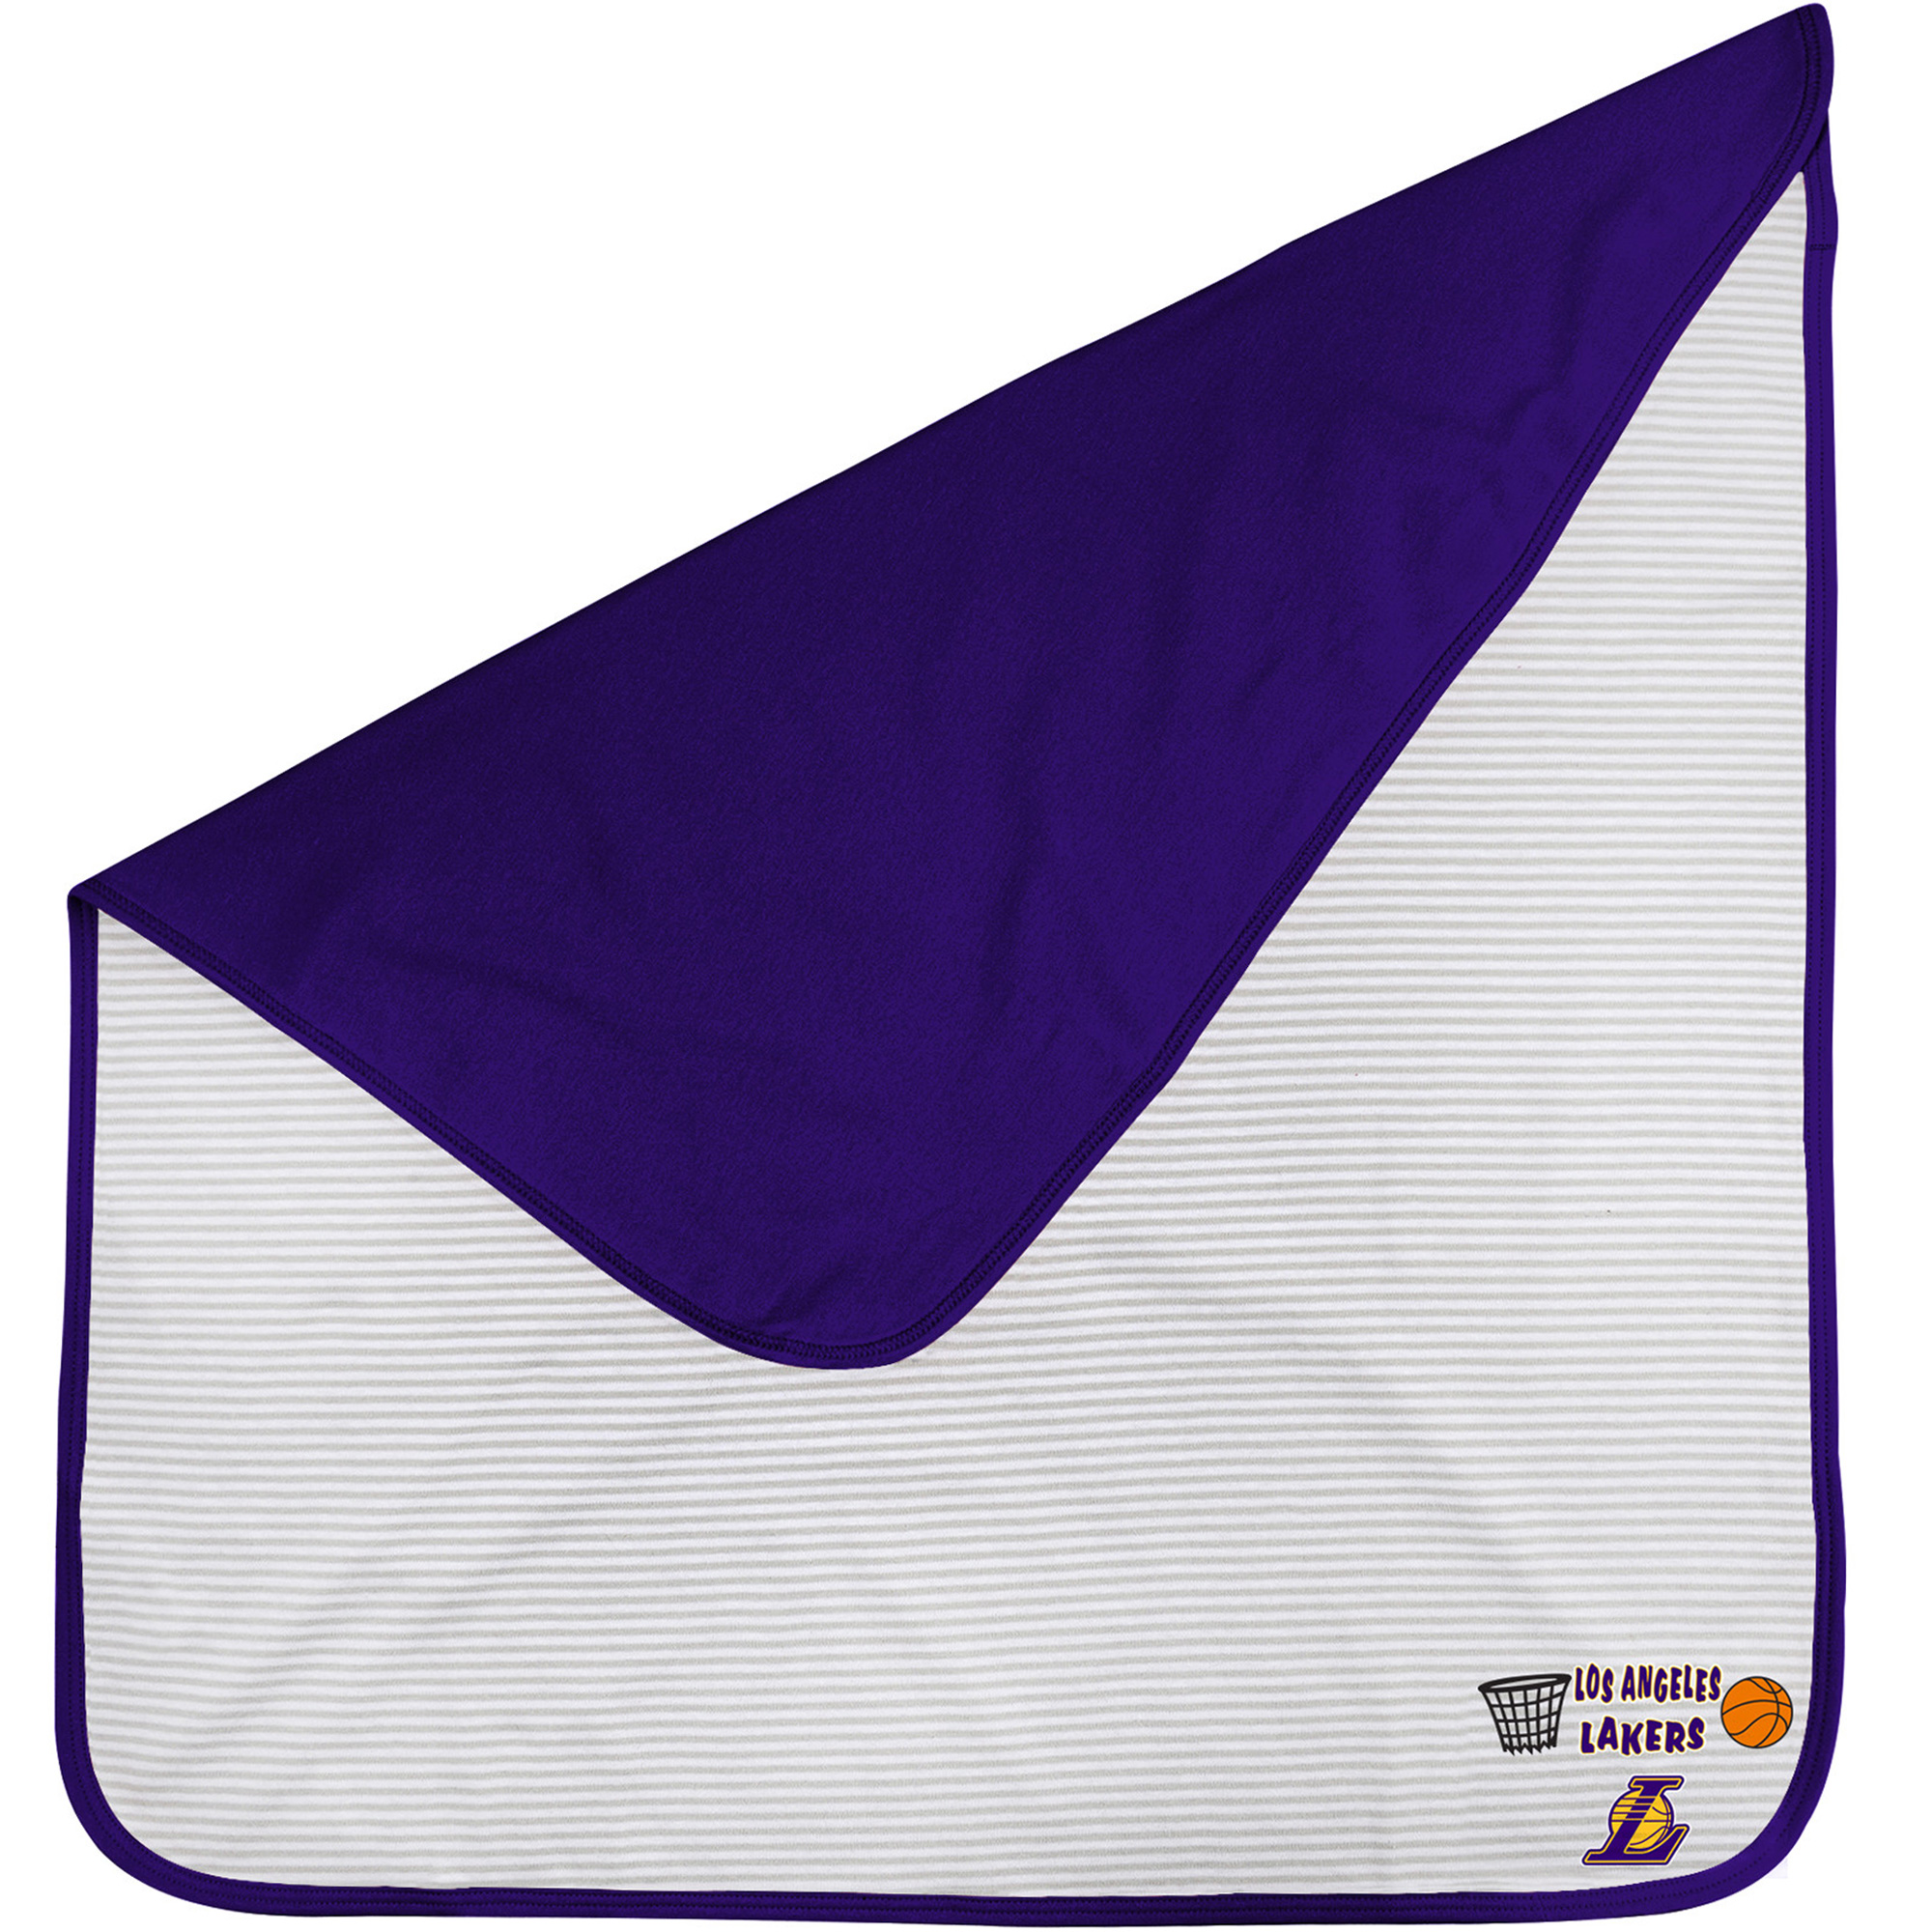 Los Angeles Lakers Infant Lil Kicker Baby Blanket - Purple - No Size